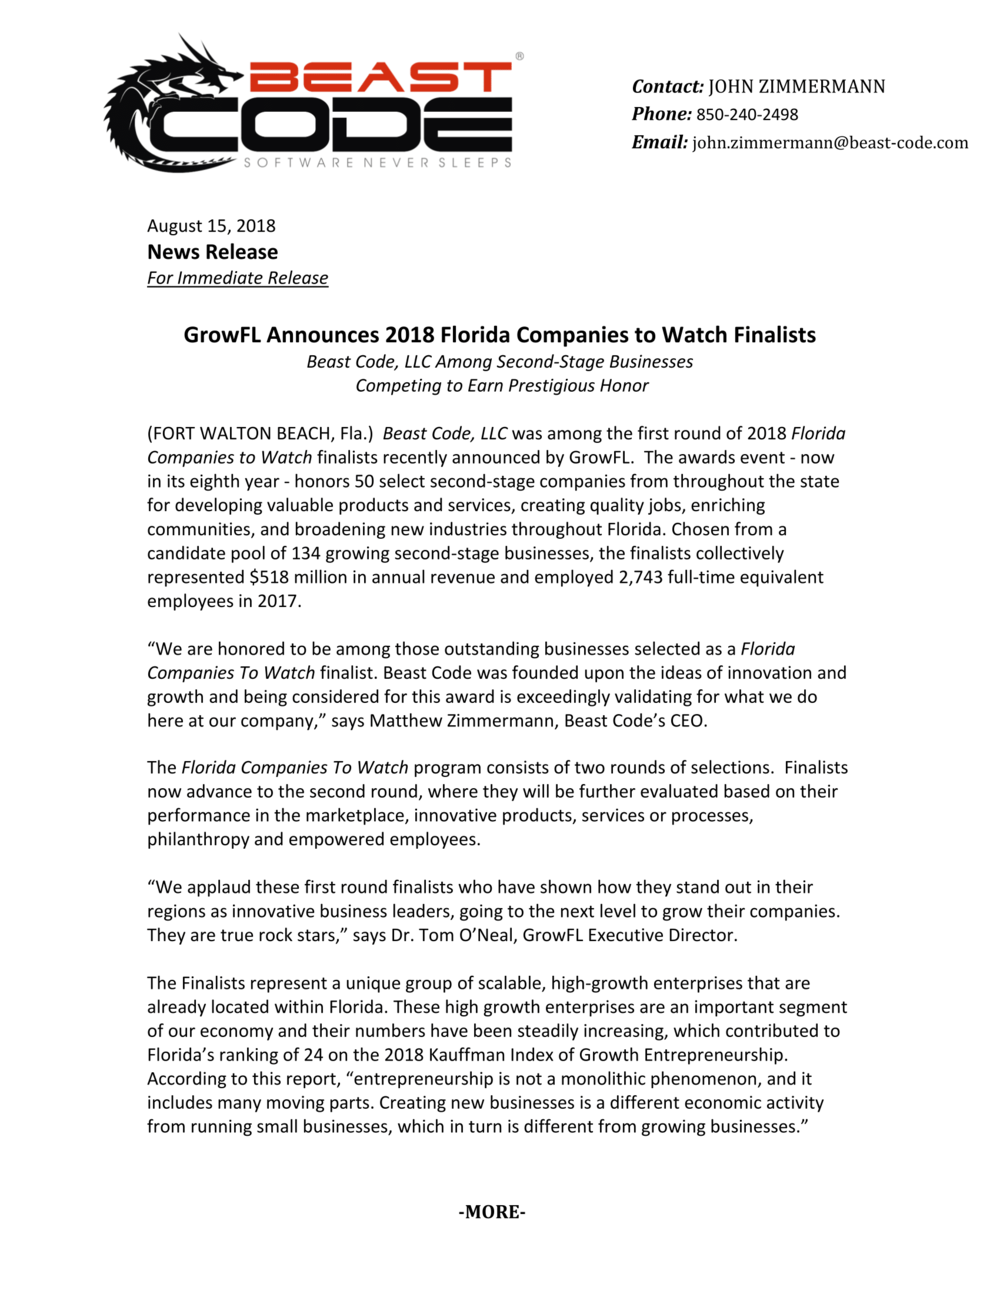 FINALIST RELEASE GrowFL Announces 2018 Florida Companies to Watch Finalists-1.png